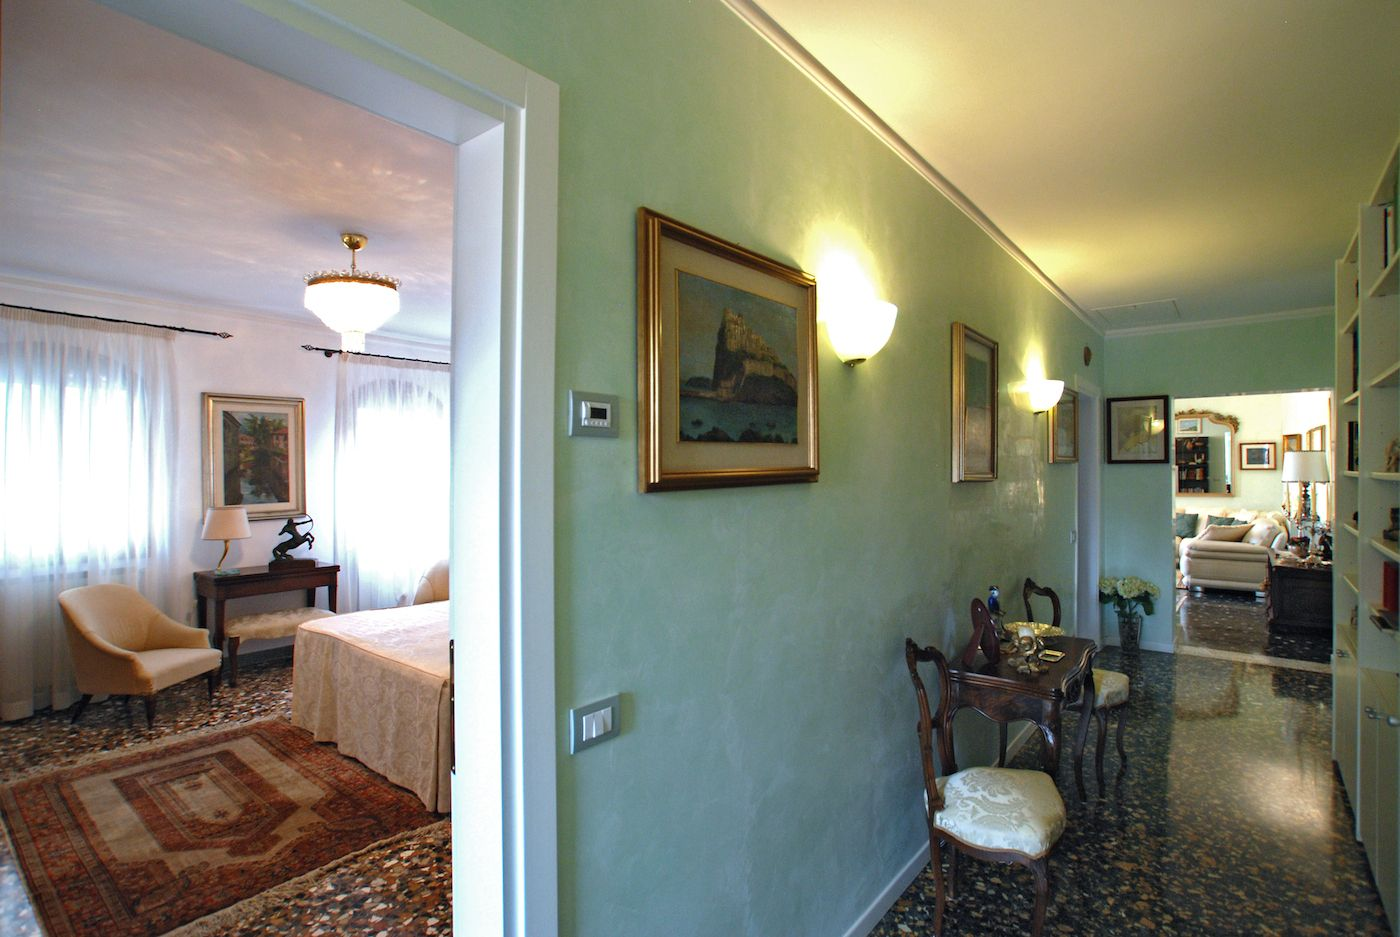 the second bedroom can be accessed from the central corridor